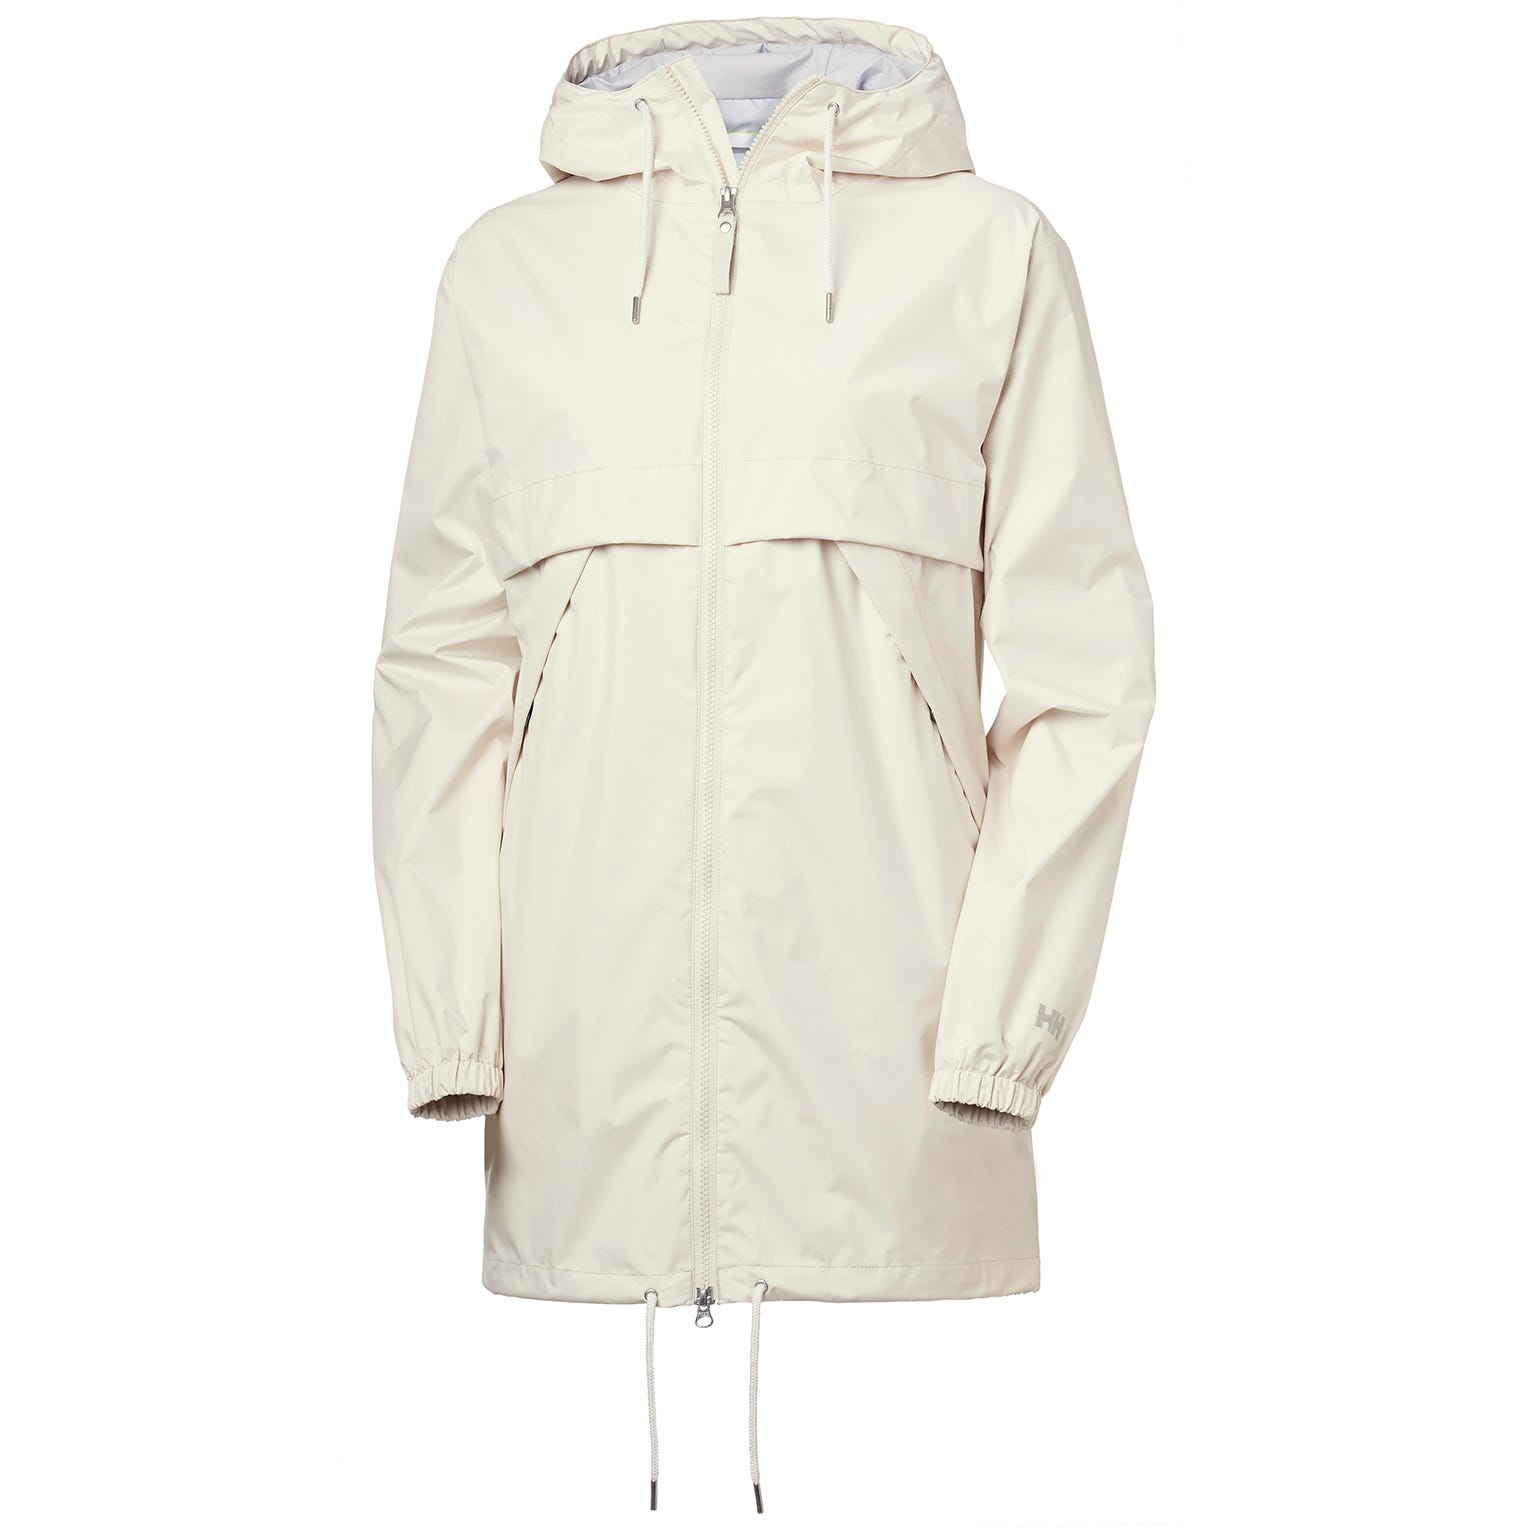 Helly Hansen Womens Jpn Raincoat White XL